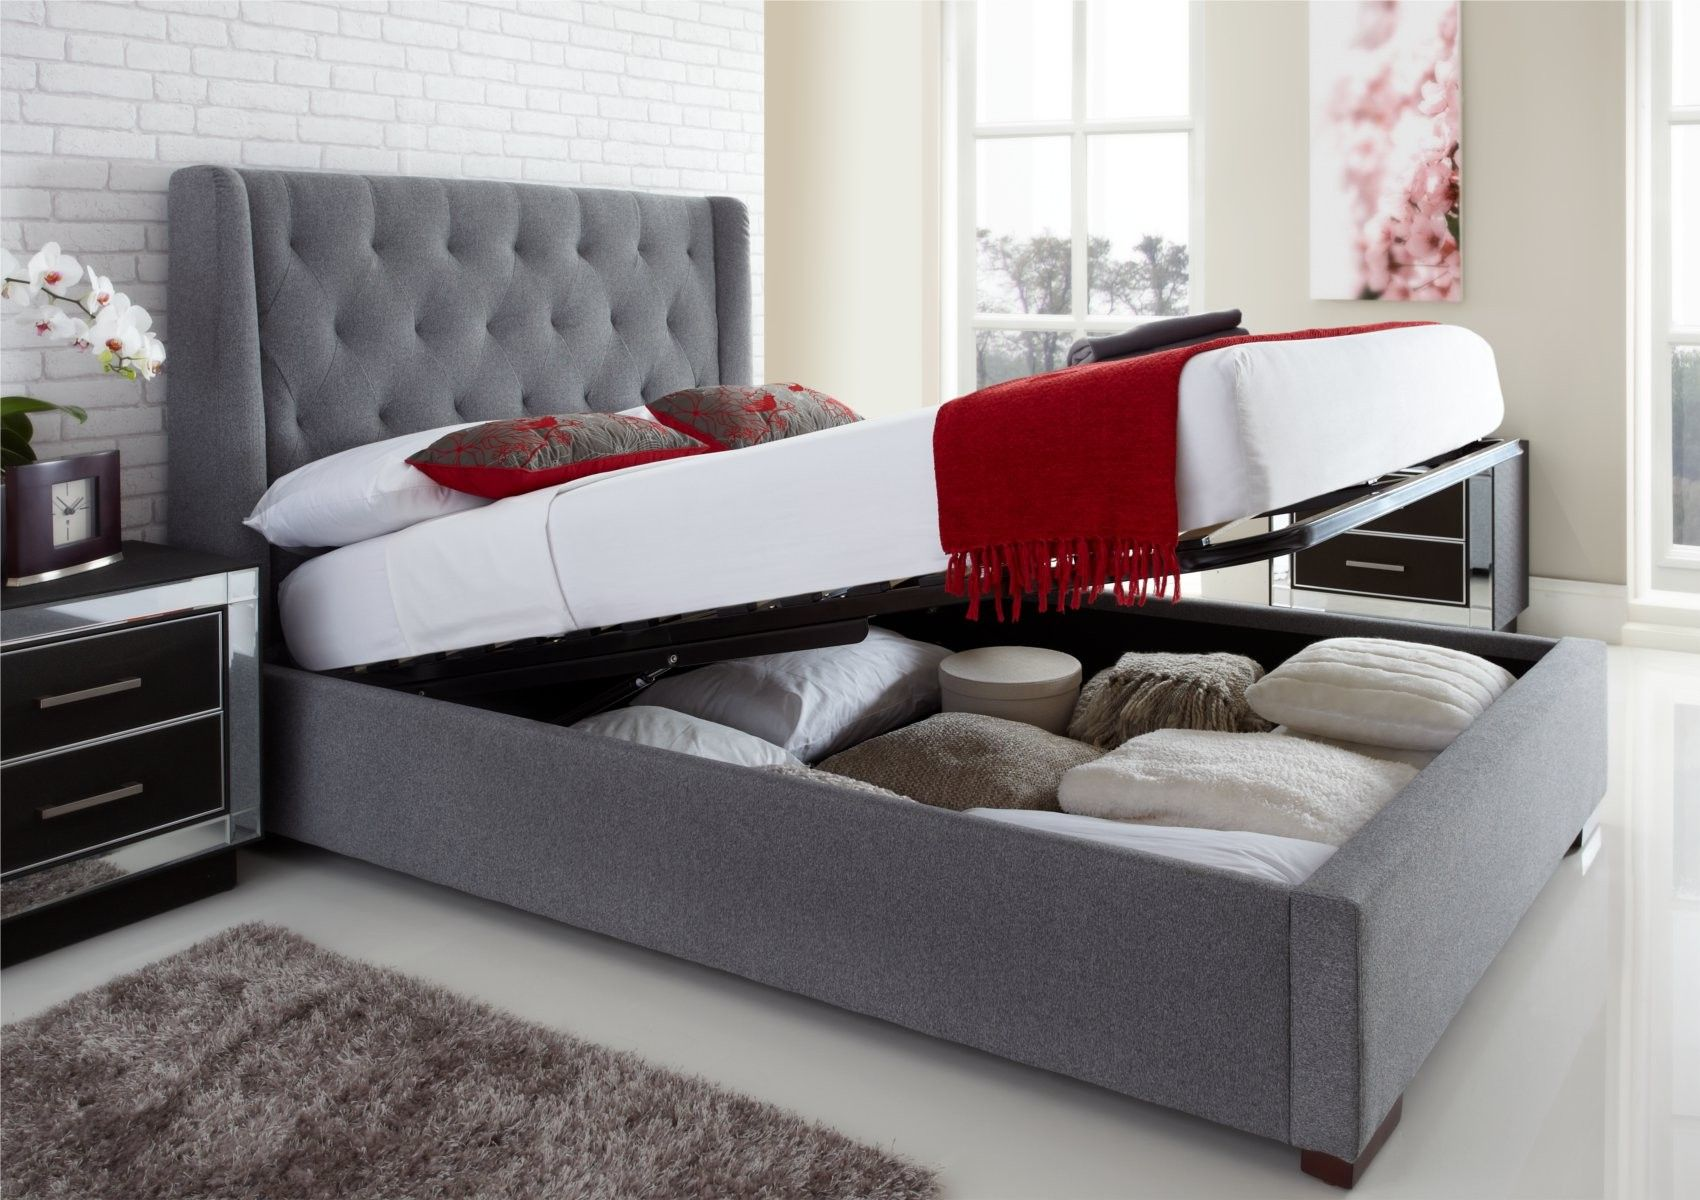 Richmond Grey Fabric Lift Up Ottoman Storage Double King Size Bed Frame |  Beresford Rental Larger | Pinterest | Ottoman Storage, Double King Size Bed  And ...